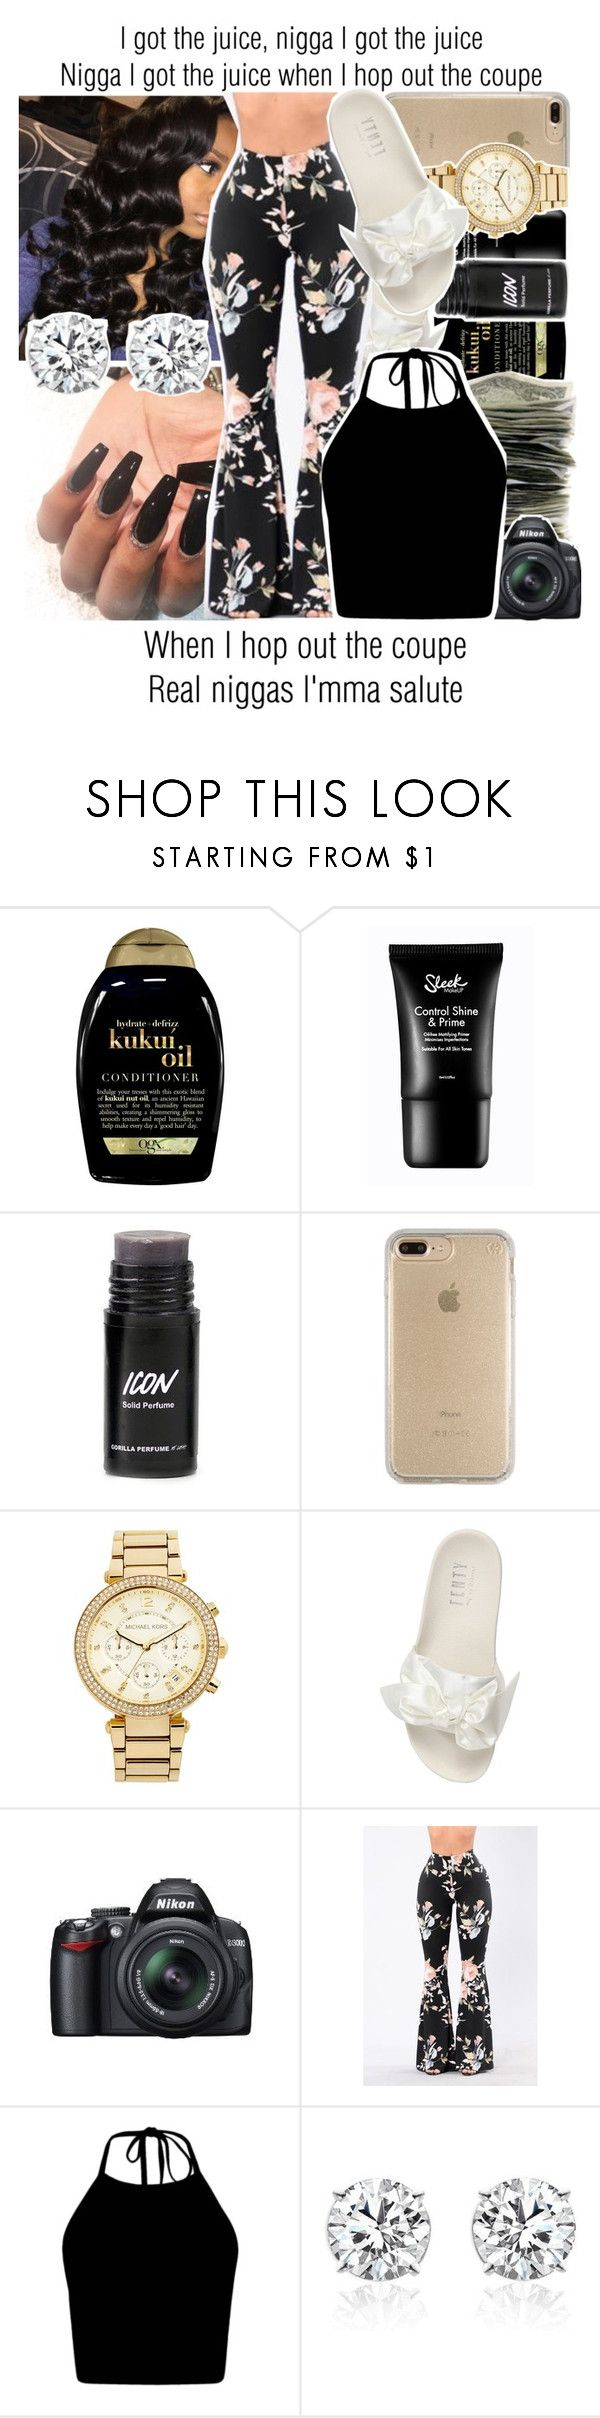 """I Got the Juice x Meek Mill"" by juicyums ❤ liked on Polyvore featuring Organix, Speck, MICHAEL Michael Kors, Puma and Nikon"